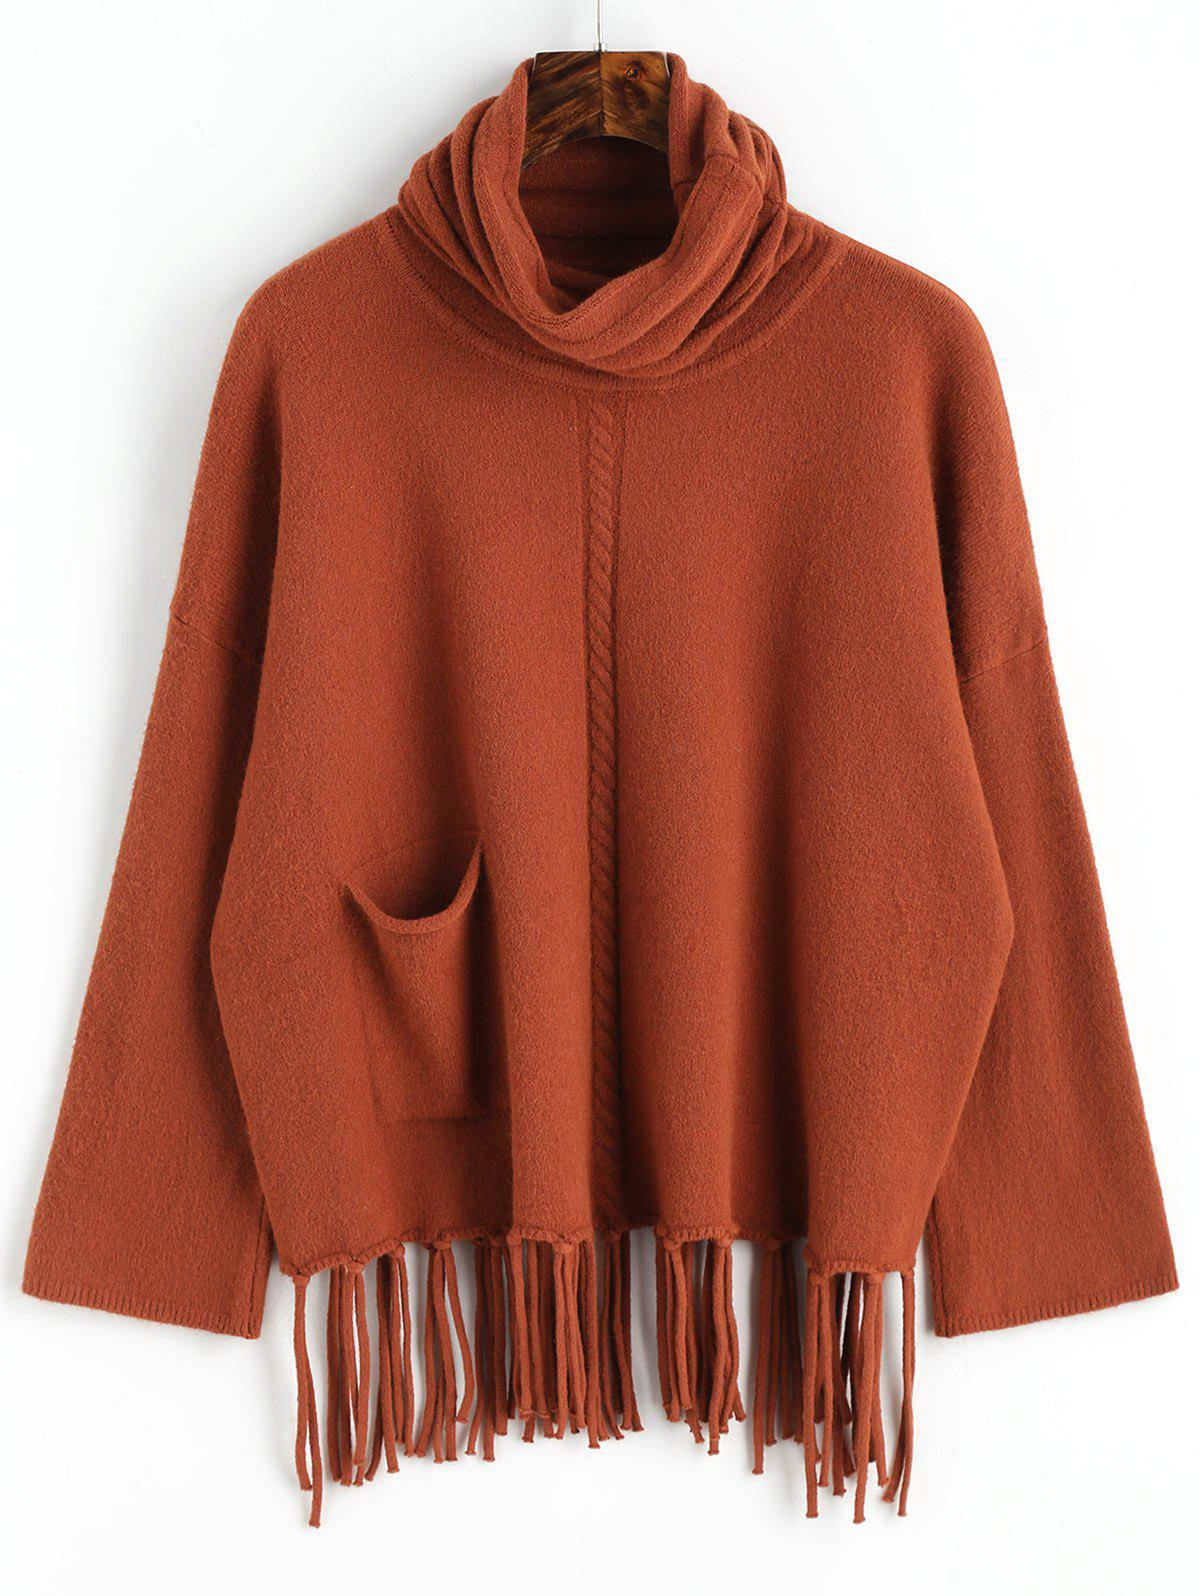 Turtleneck Fringed Oversized Pullover Sweater - DARK AUBURN ONE SIZE